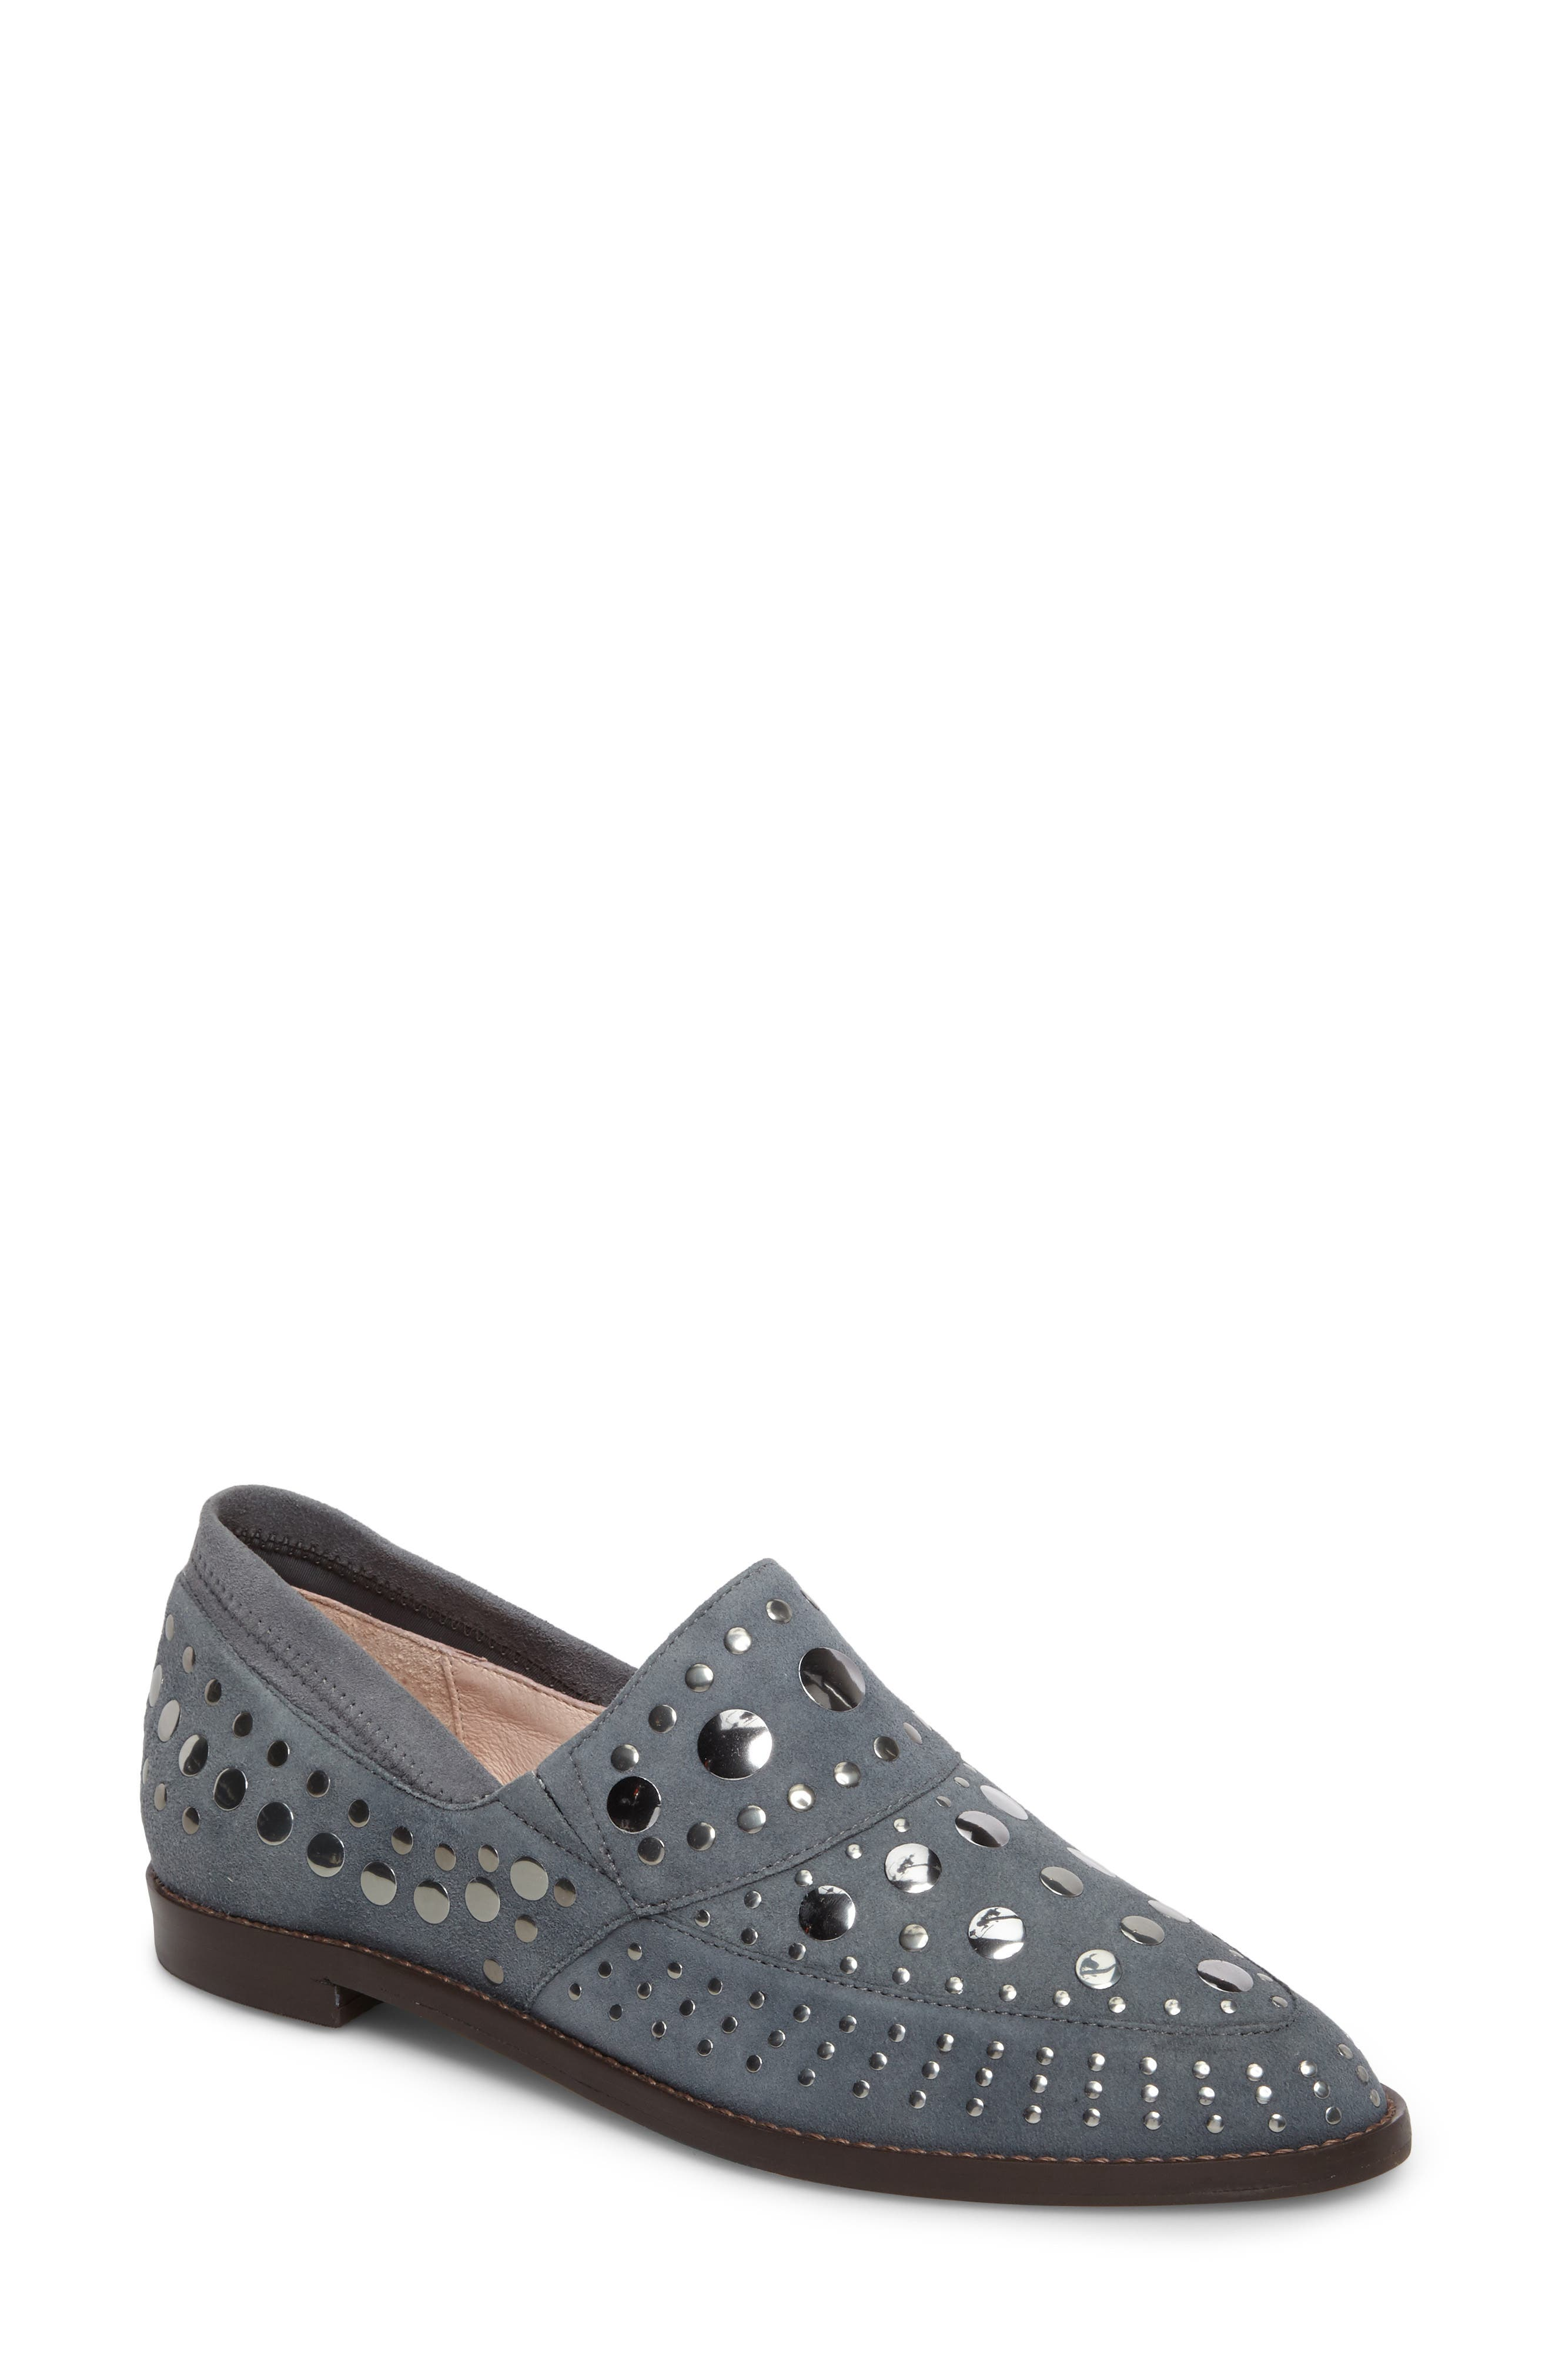 Ping Studded Loafer,                         Main,                         color, Ink Leather